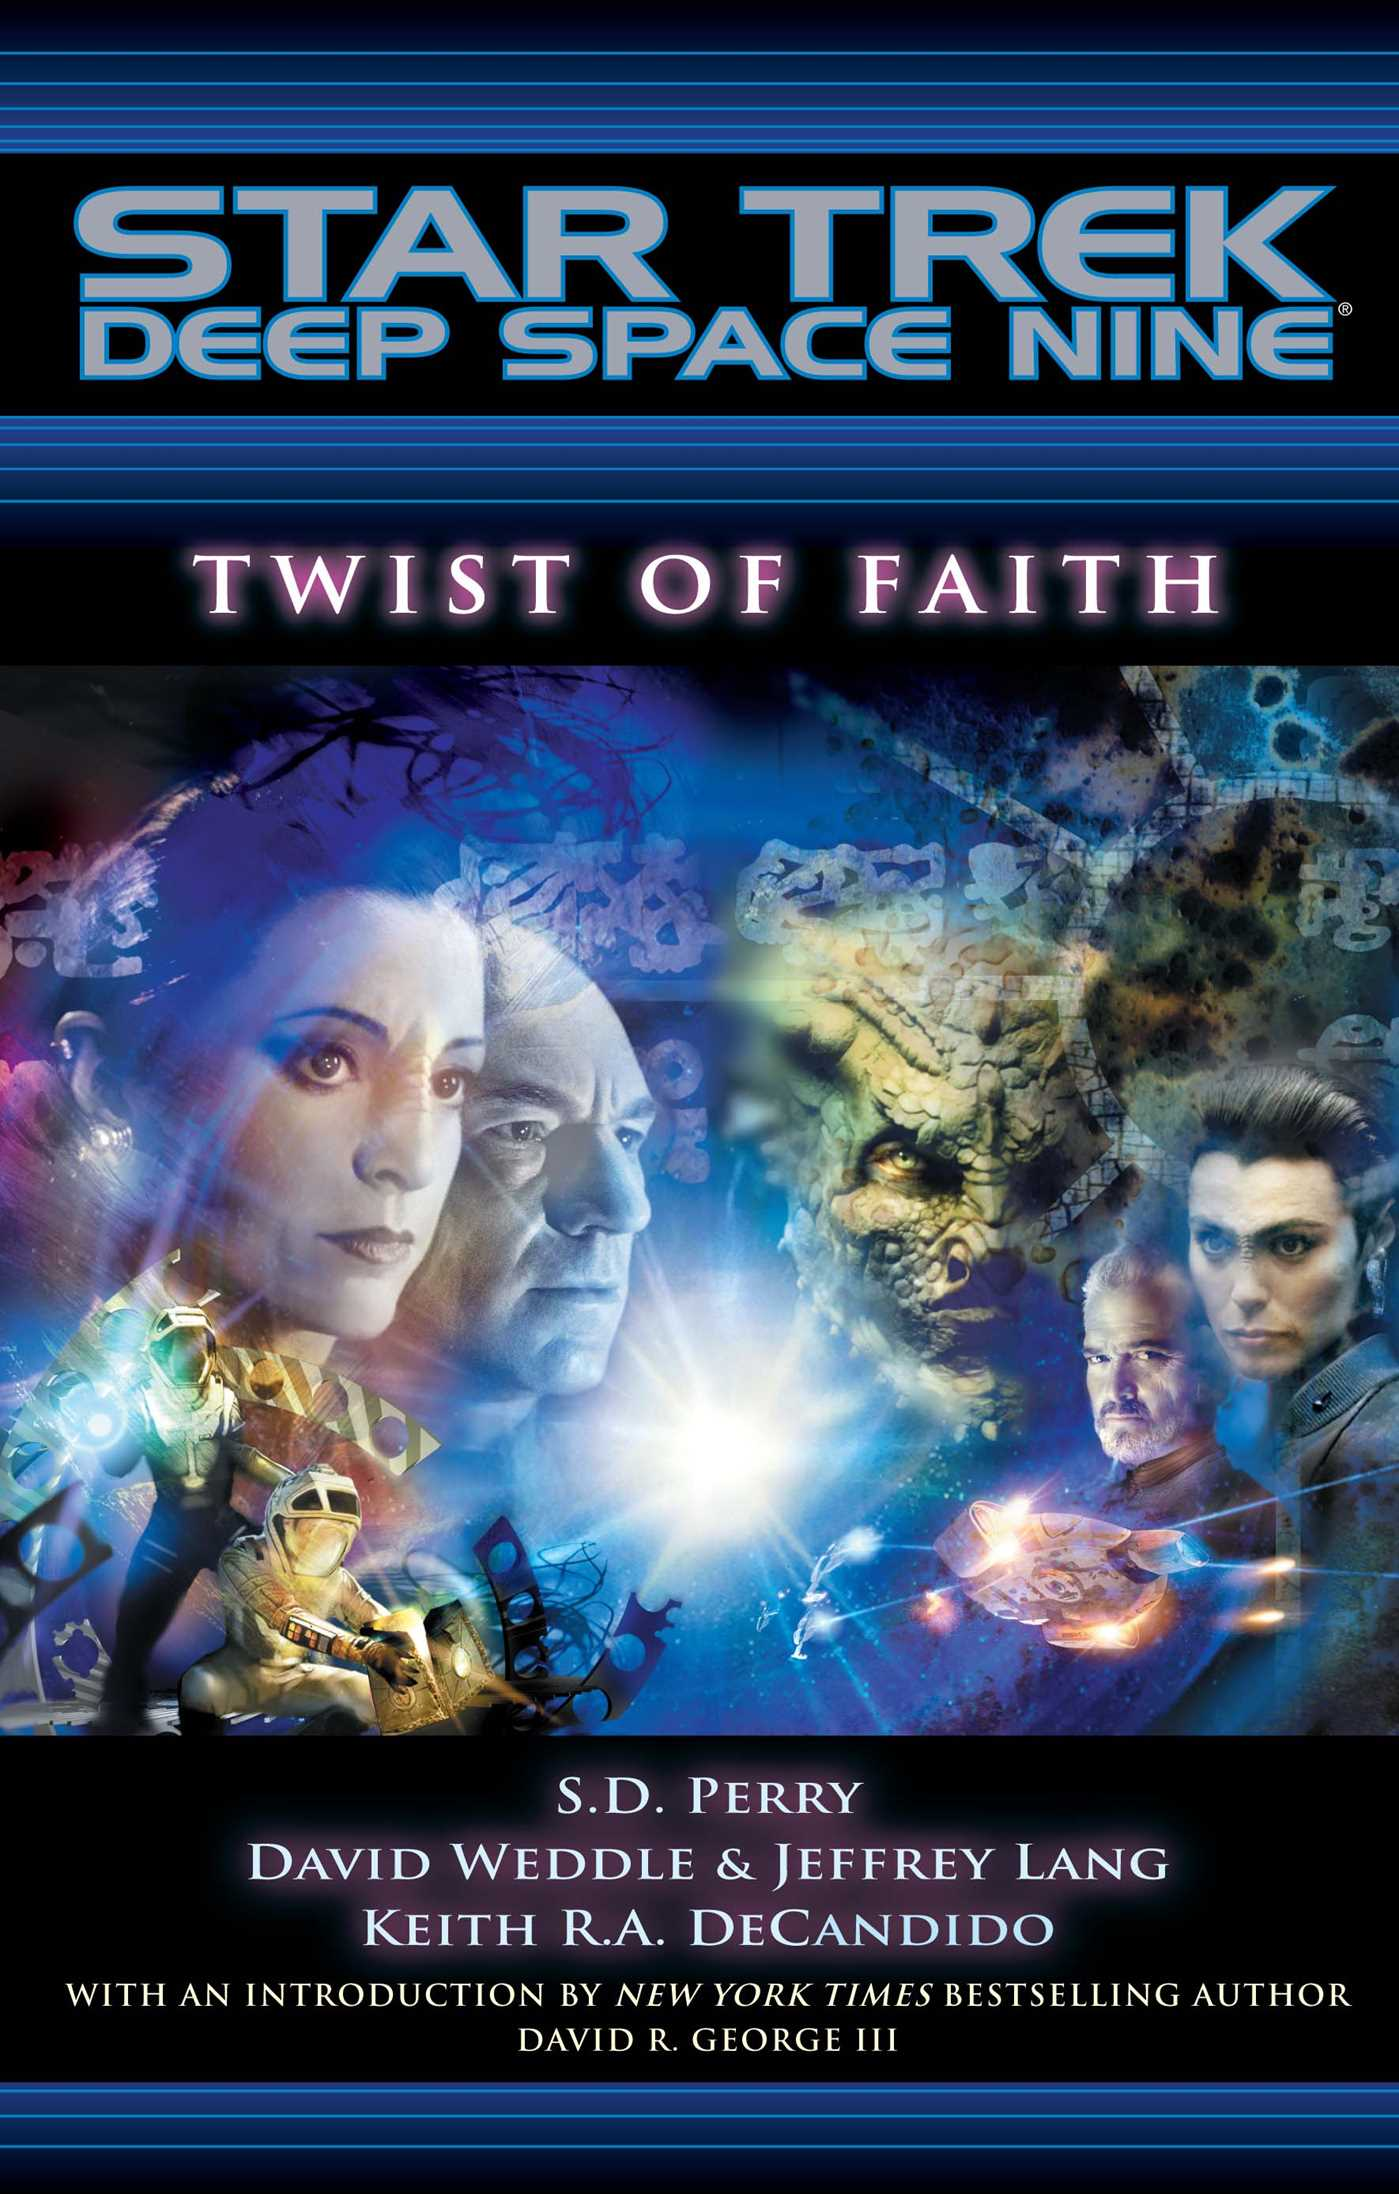 Star-trek-deep-space-nine-twist-of-faith-9781416560746_hr